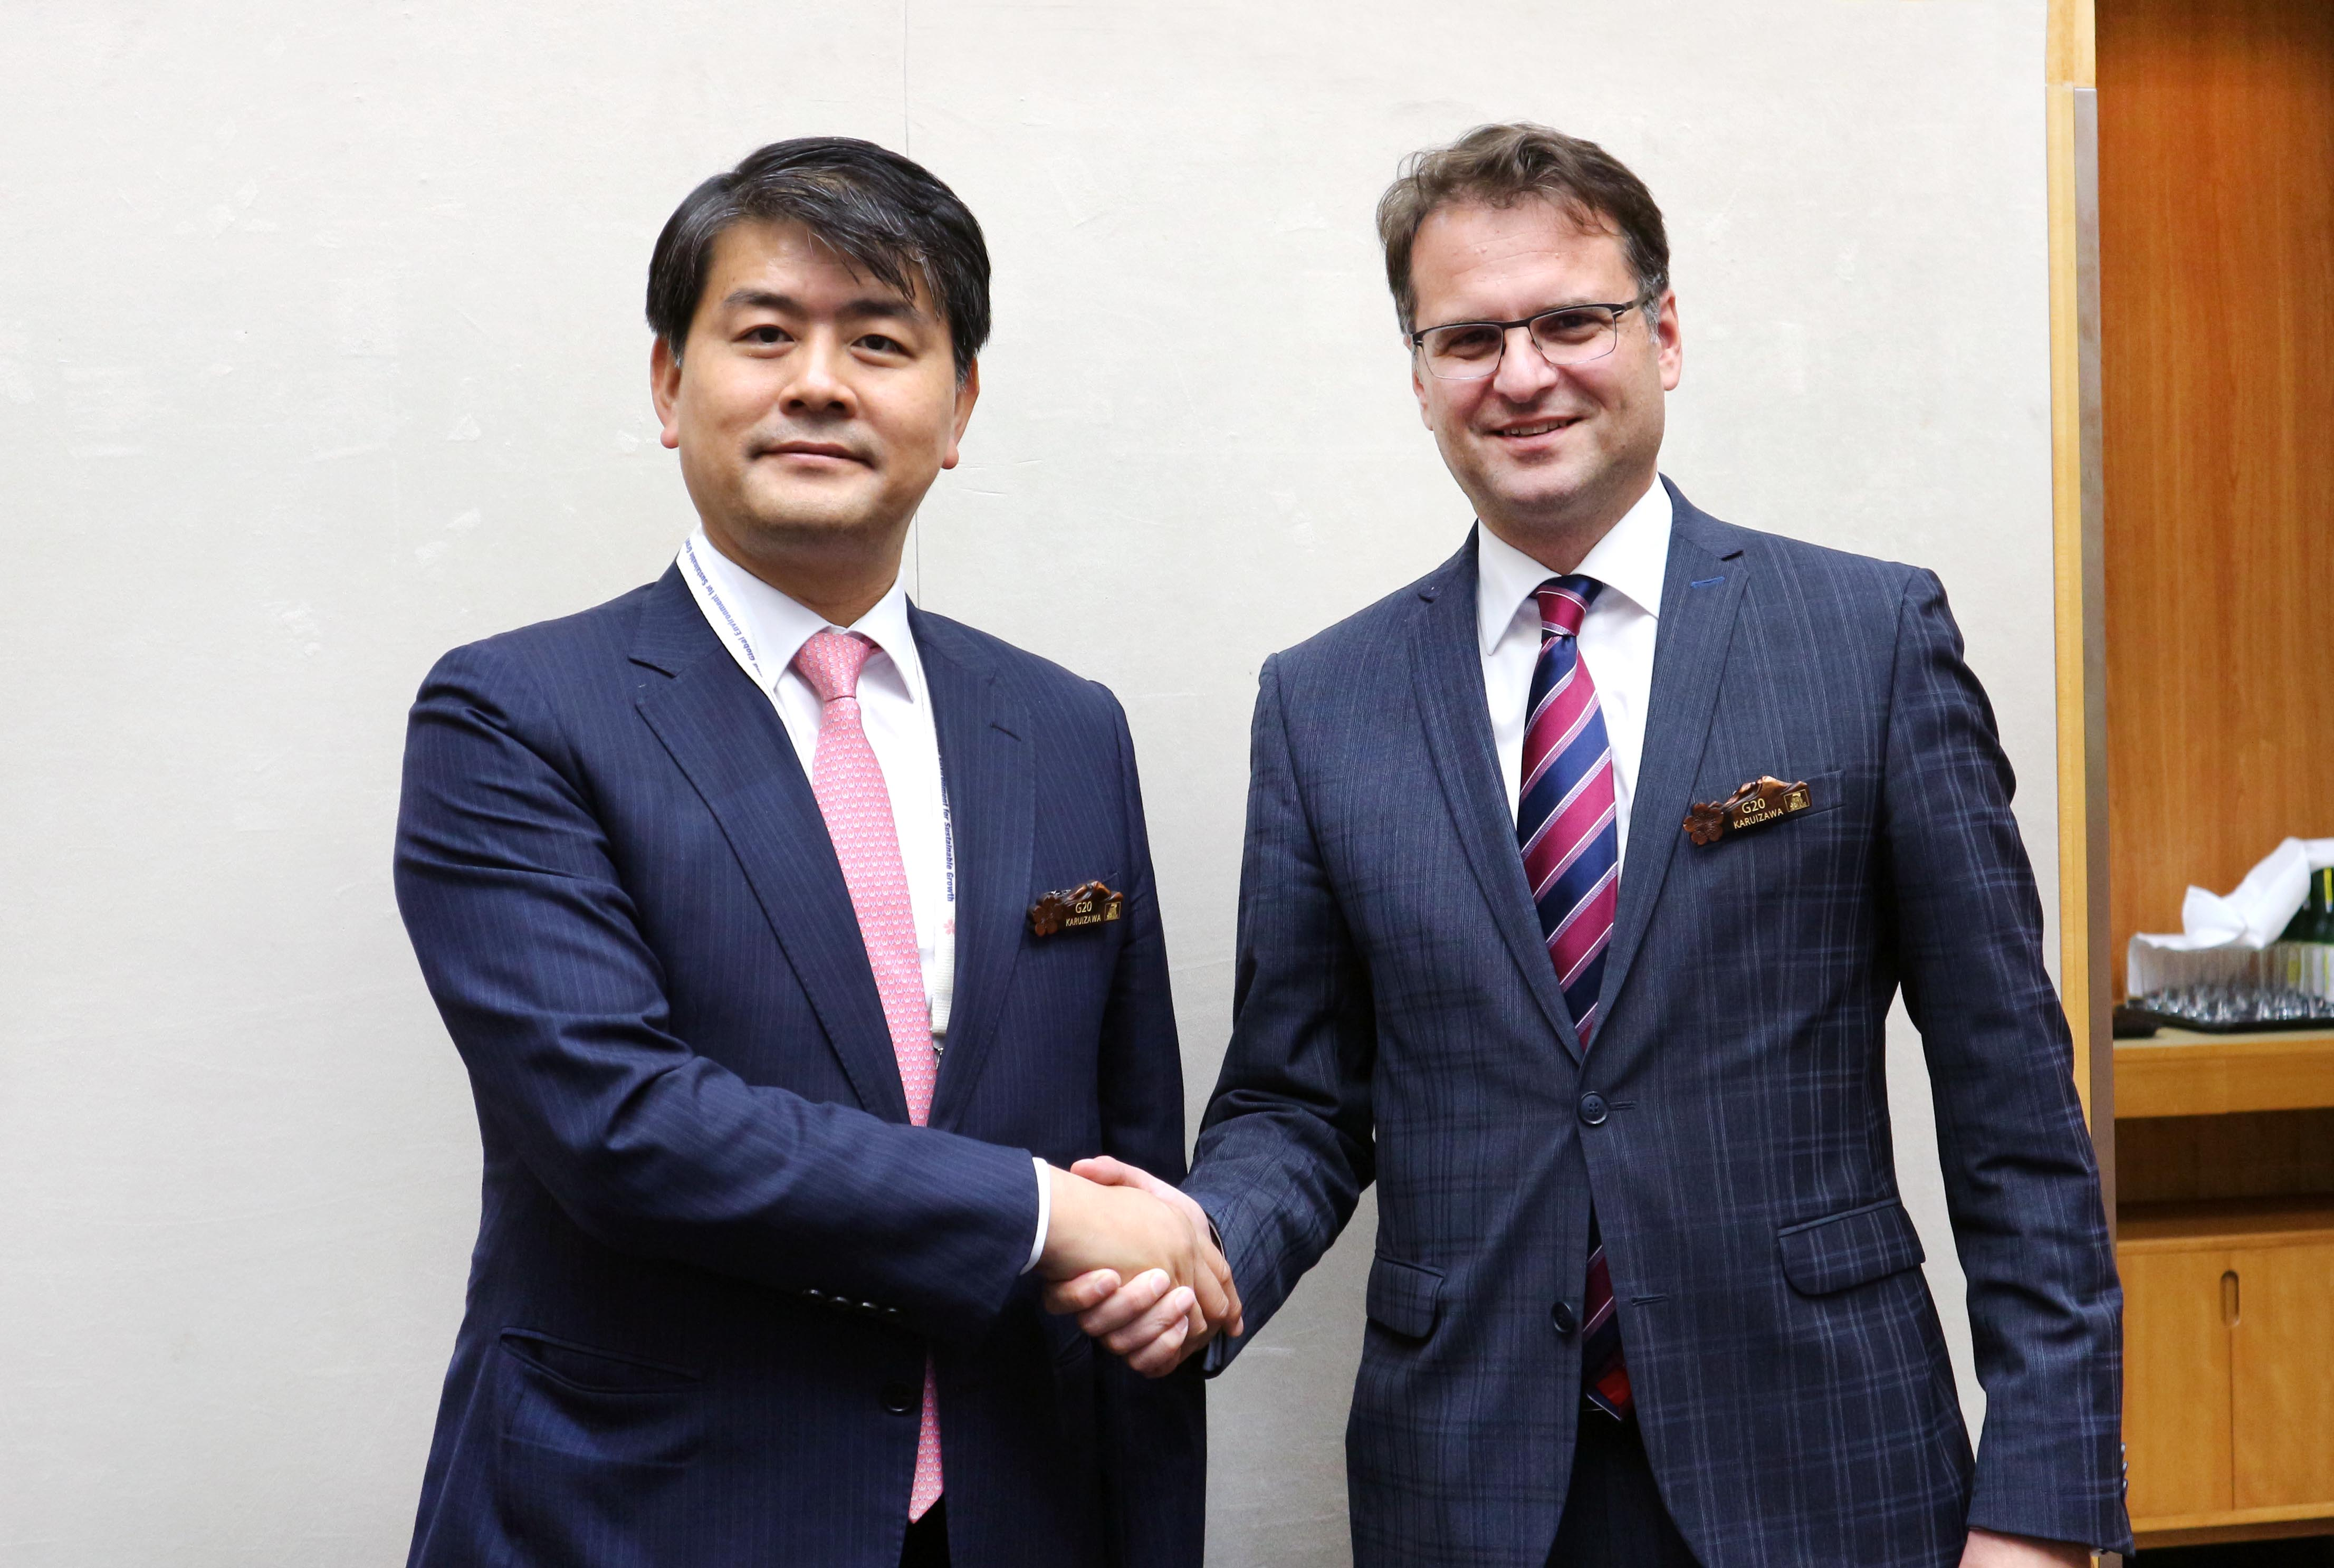 Deputy Minister Joo meets with Germany's Energy State Secretary